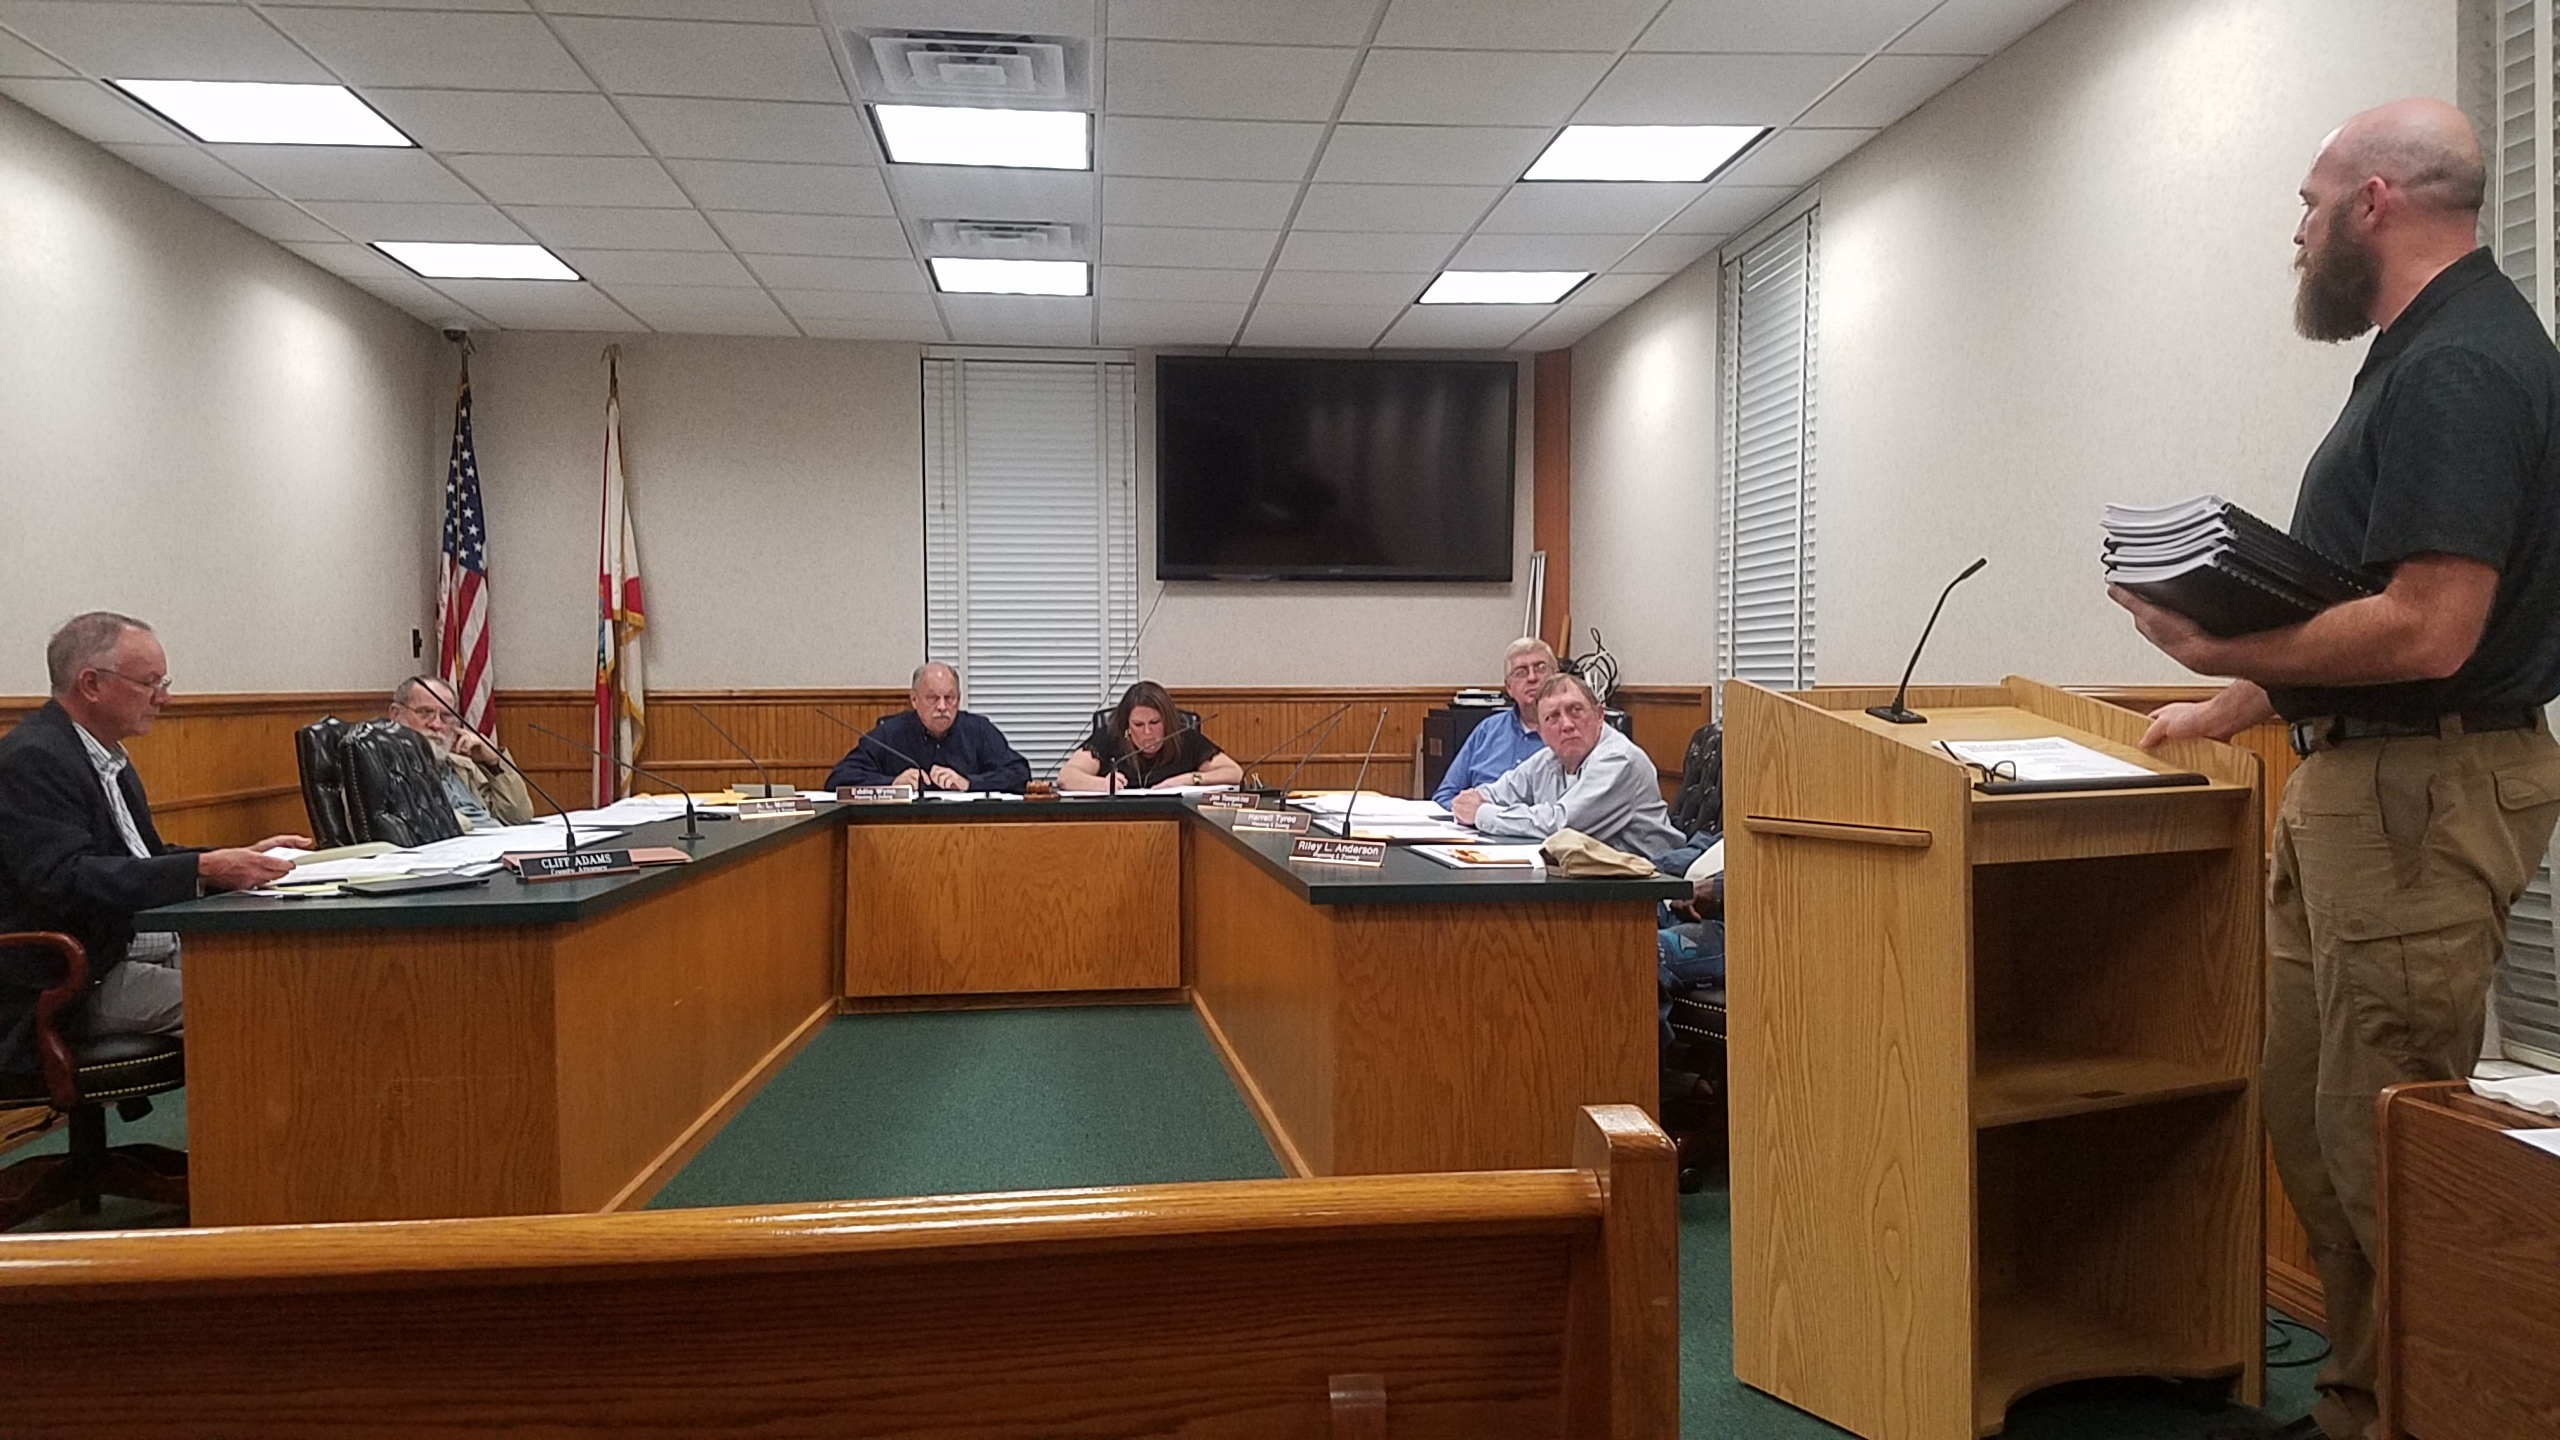 2560x1440 County Consultant Gregory Hintzen with report, Consultant Report, in PCS Phosphate mine permit Public Hearings, Jasper, FL, by John S. Quarterman, for WWALS.net, 23 January 2018